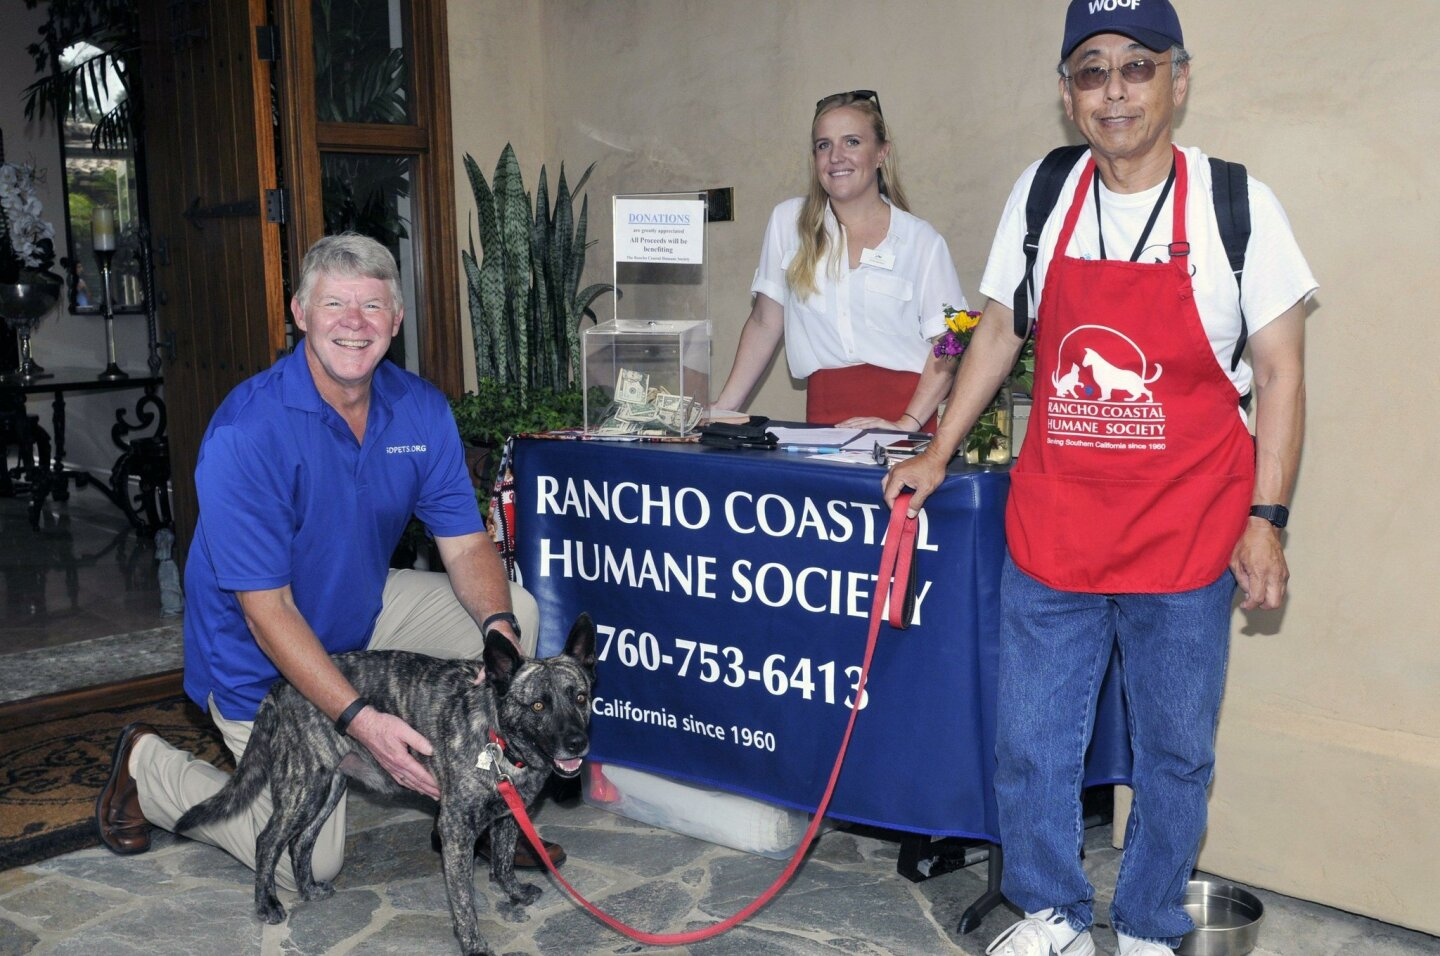 Rancho Coastal Humane Society PR Director John Van Zante, Events & Foster Coordinator Kelly Peters, Volunteer Bob Nouchi, and adoptable Max